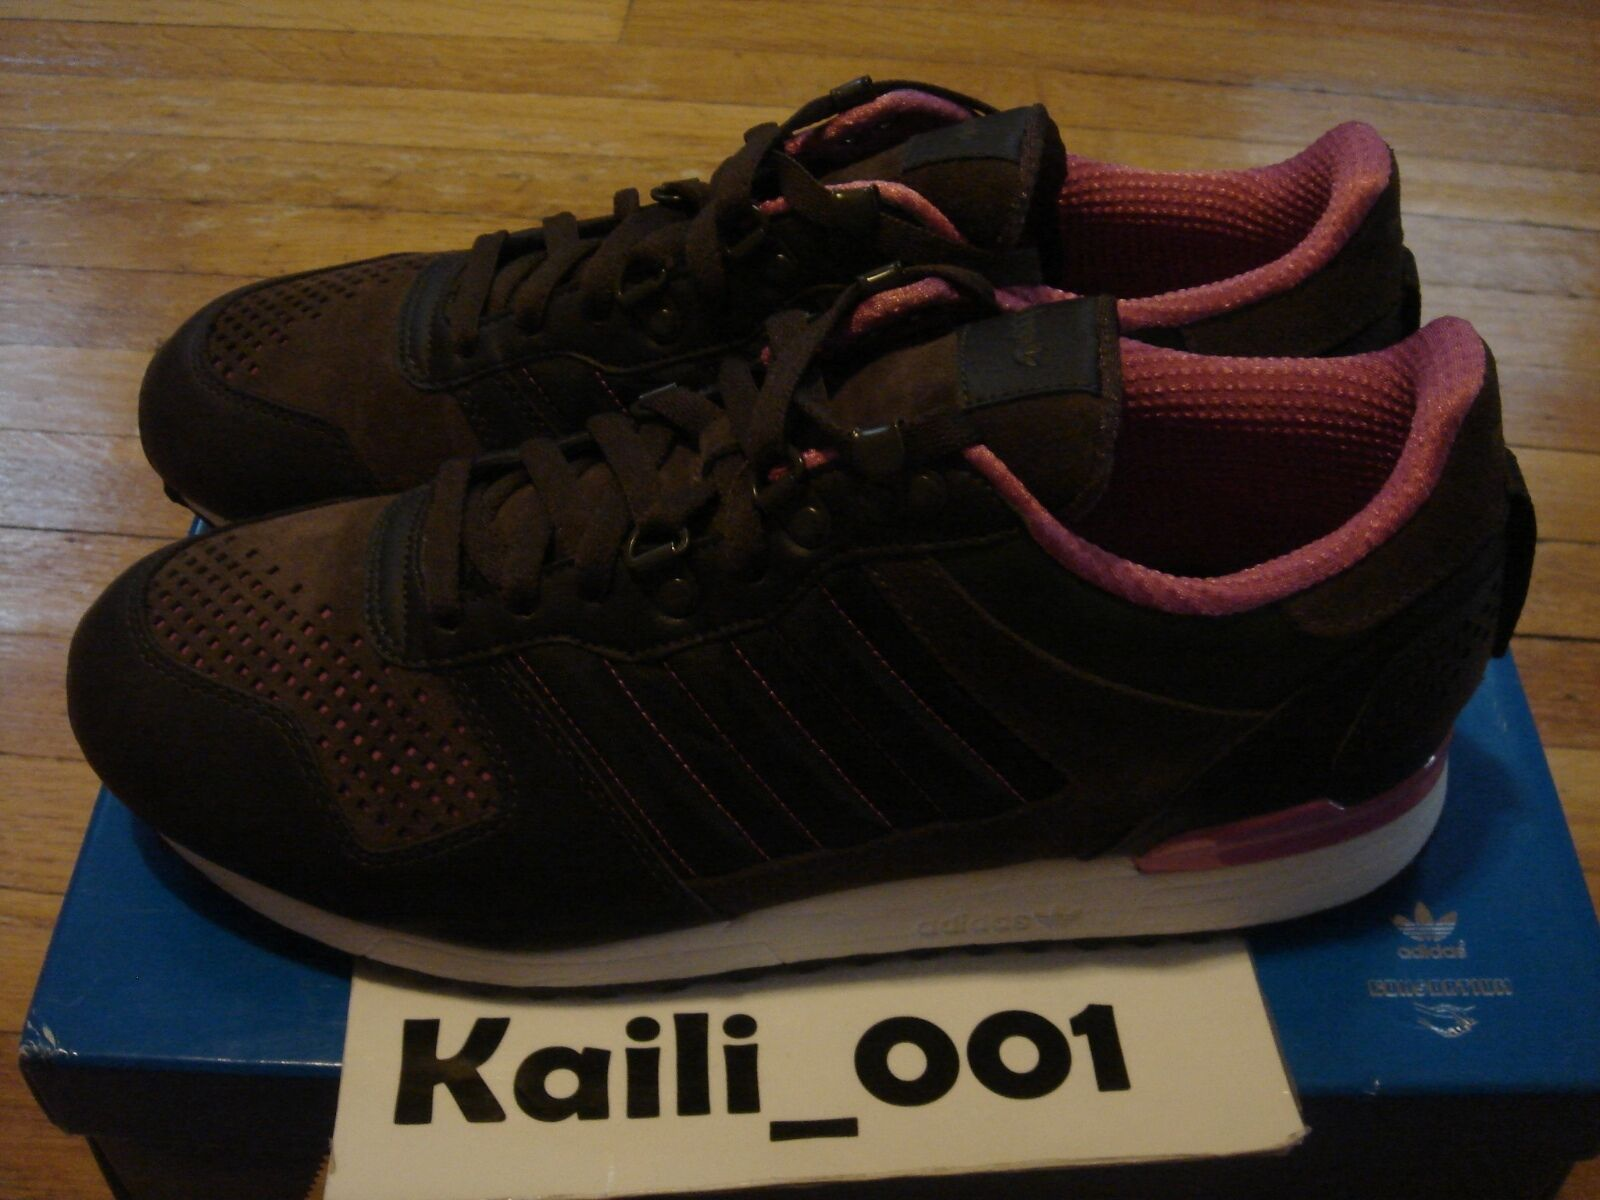 Adidas ZX 700 O Store Size 13 USED WORN 474773 DRKBRO/DRKBRO/RBIA CONSORTIUM B